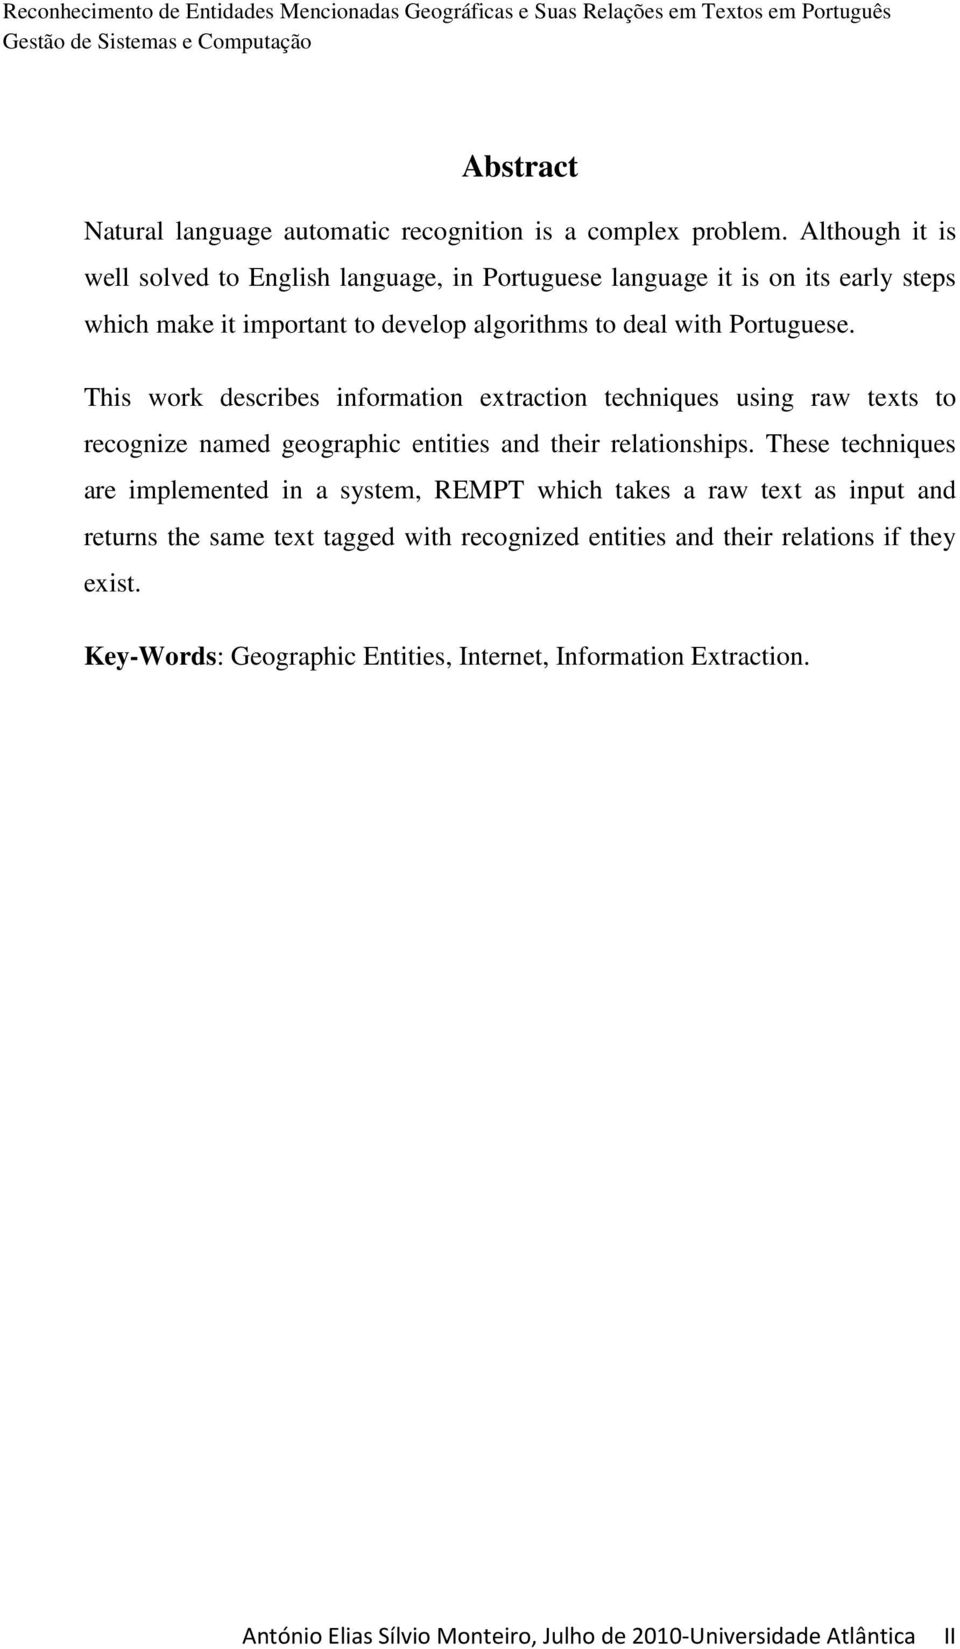 This work describes information extraction techniques using raw texts to recognize named geographic entities and their relationships.